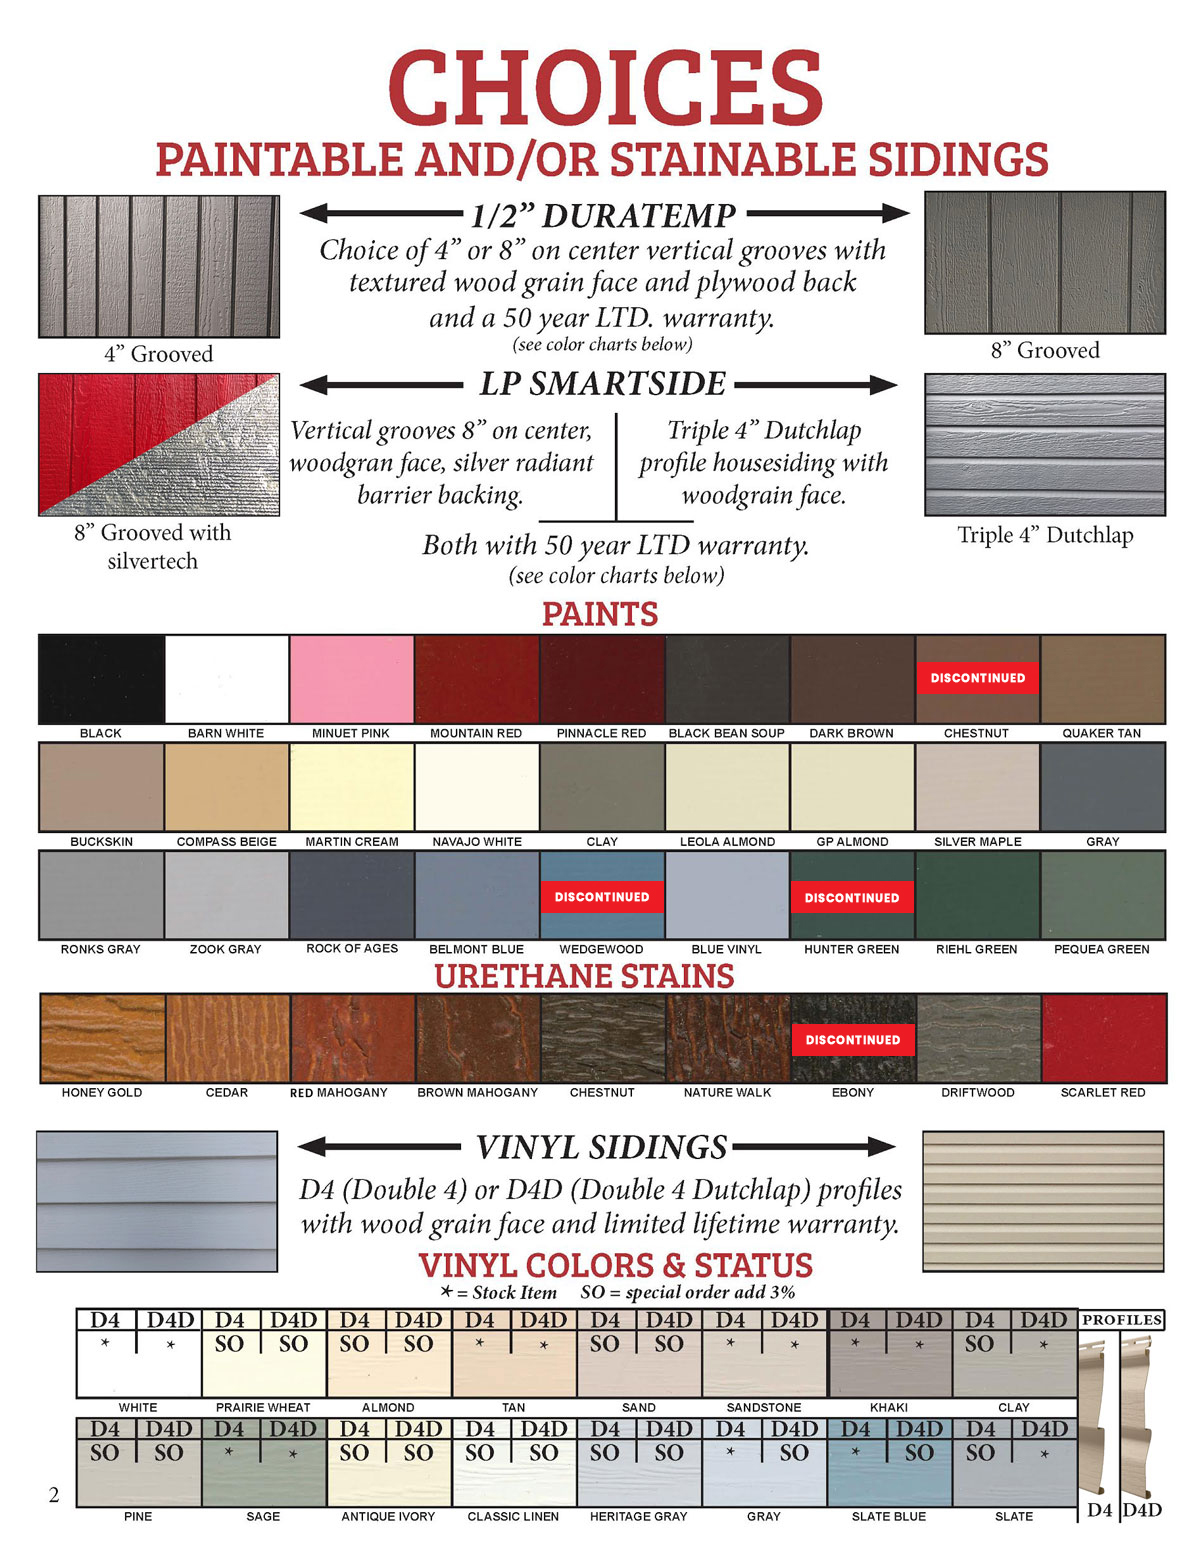 Diagram showing paintable and/or stainable siding options for sheds